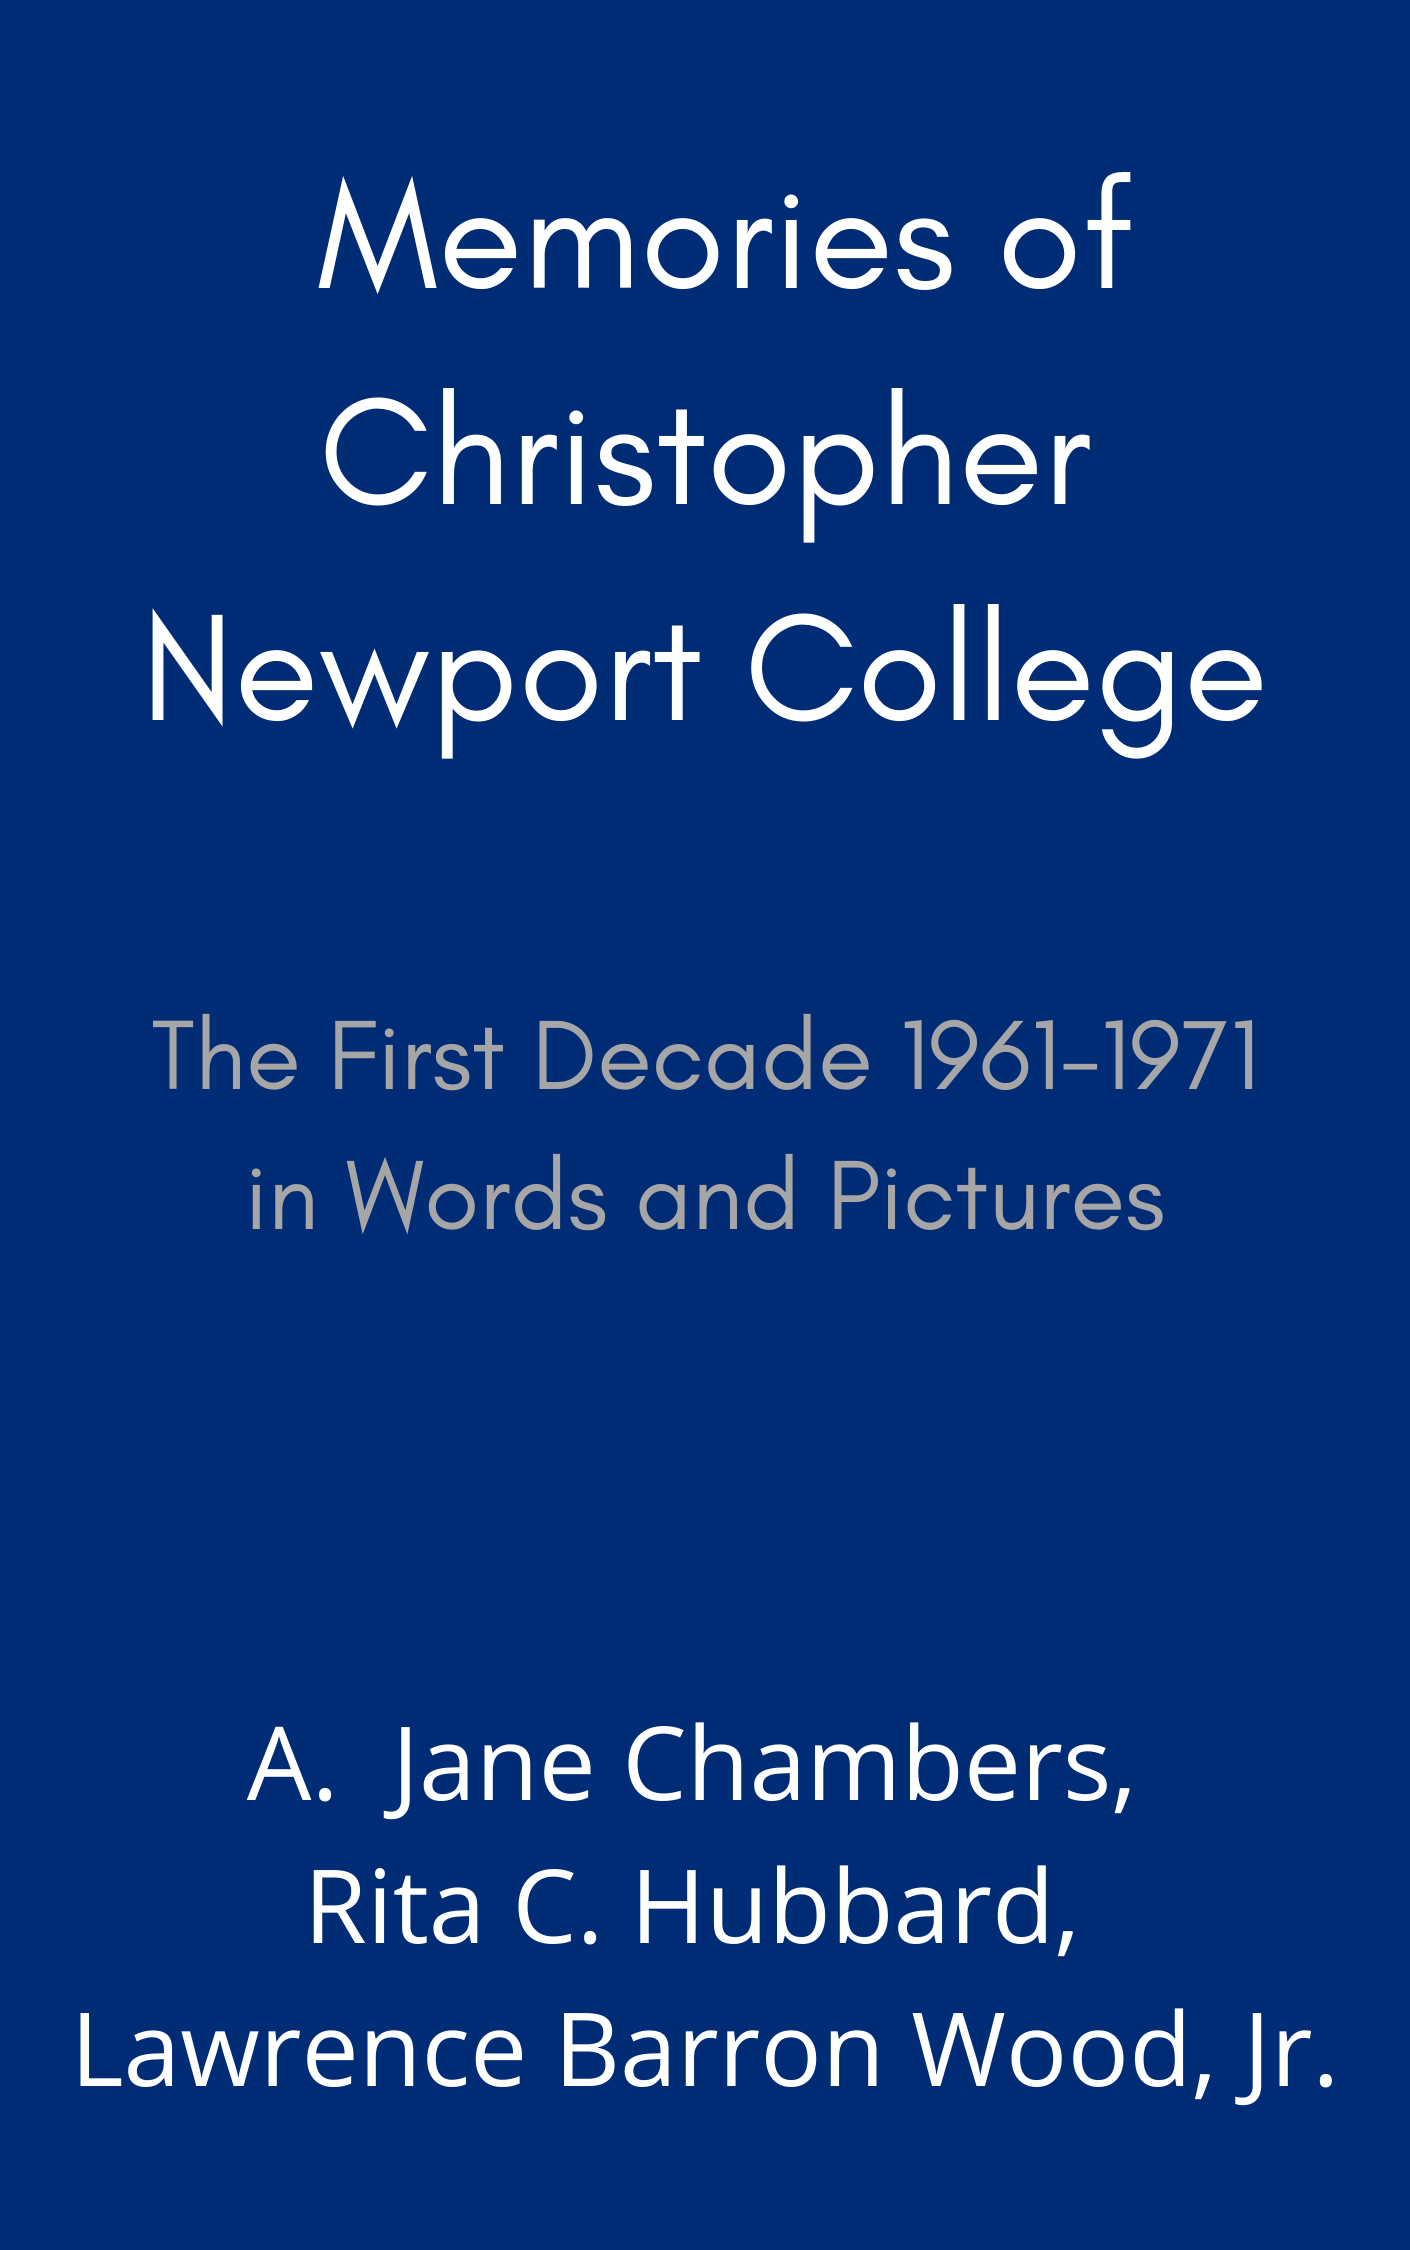 Memories of Christopher Newport College: The First Decade 1961-1971 in Words and Pictures